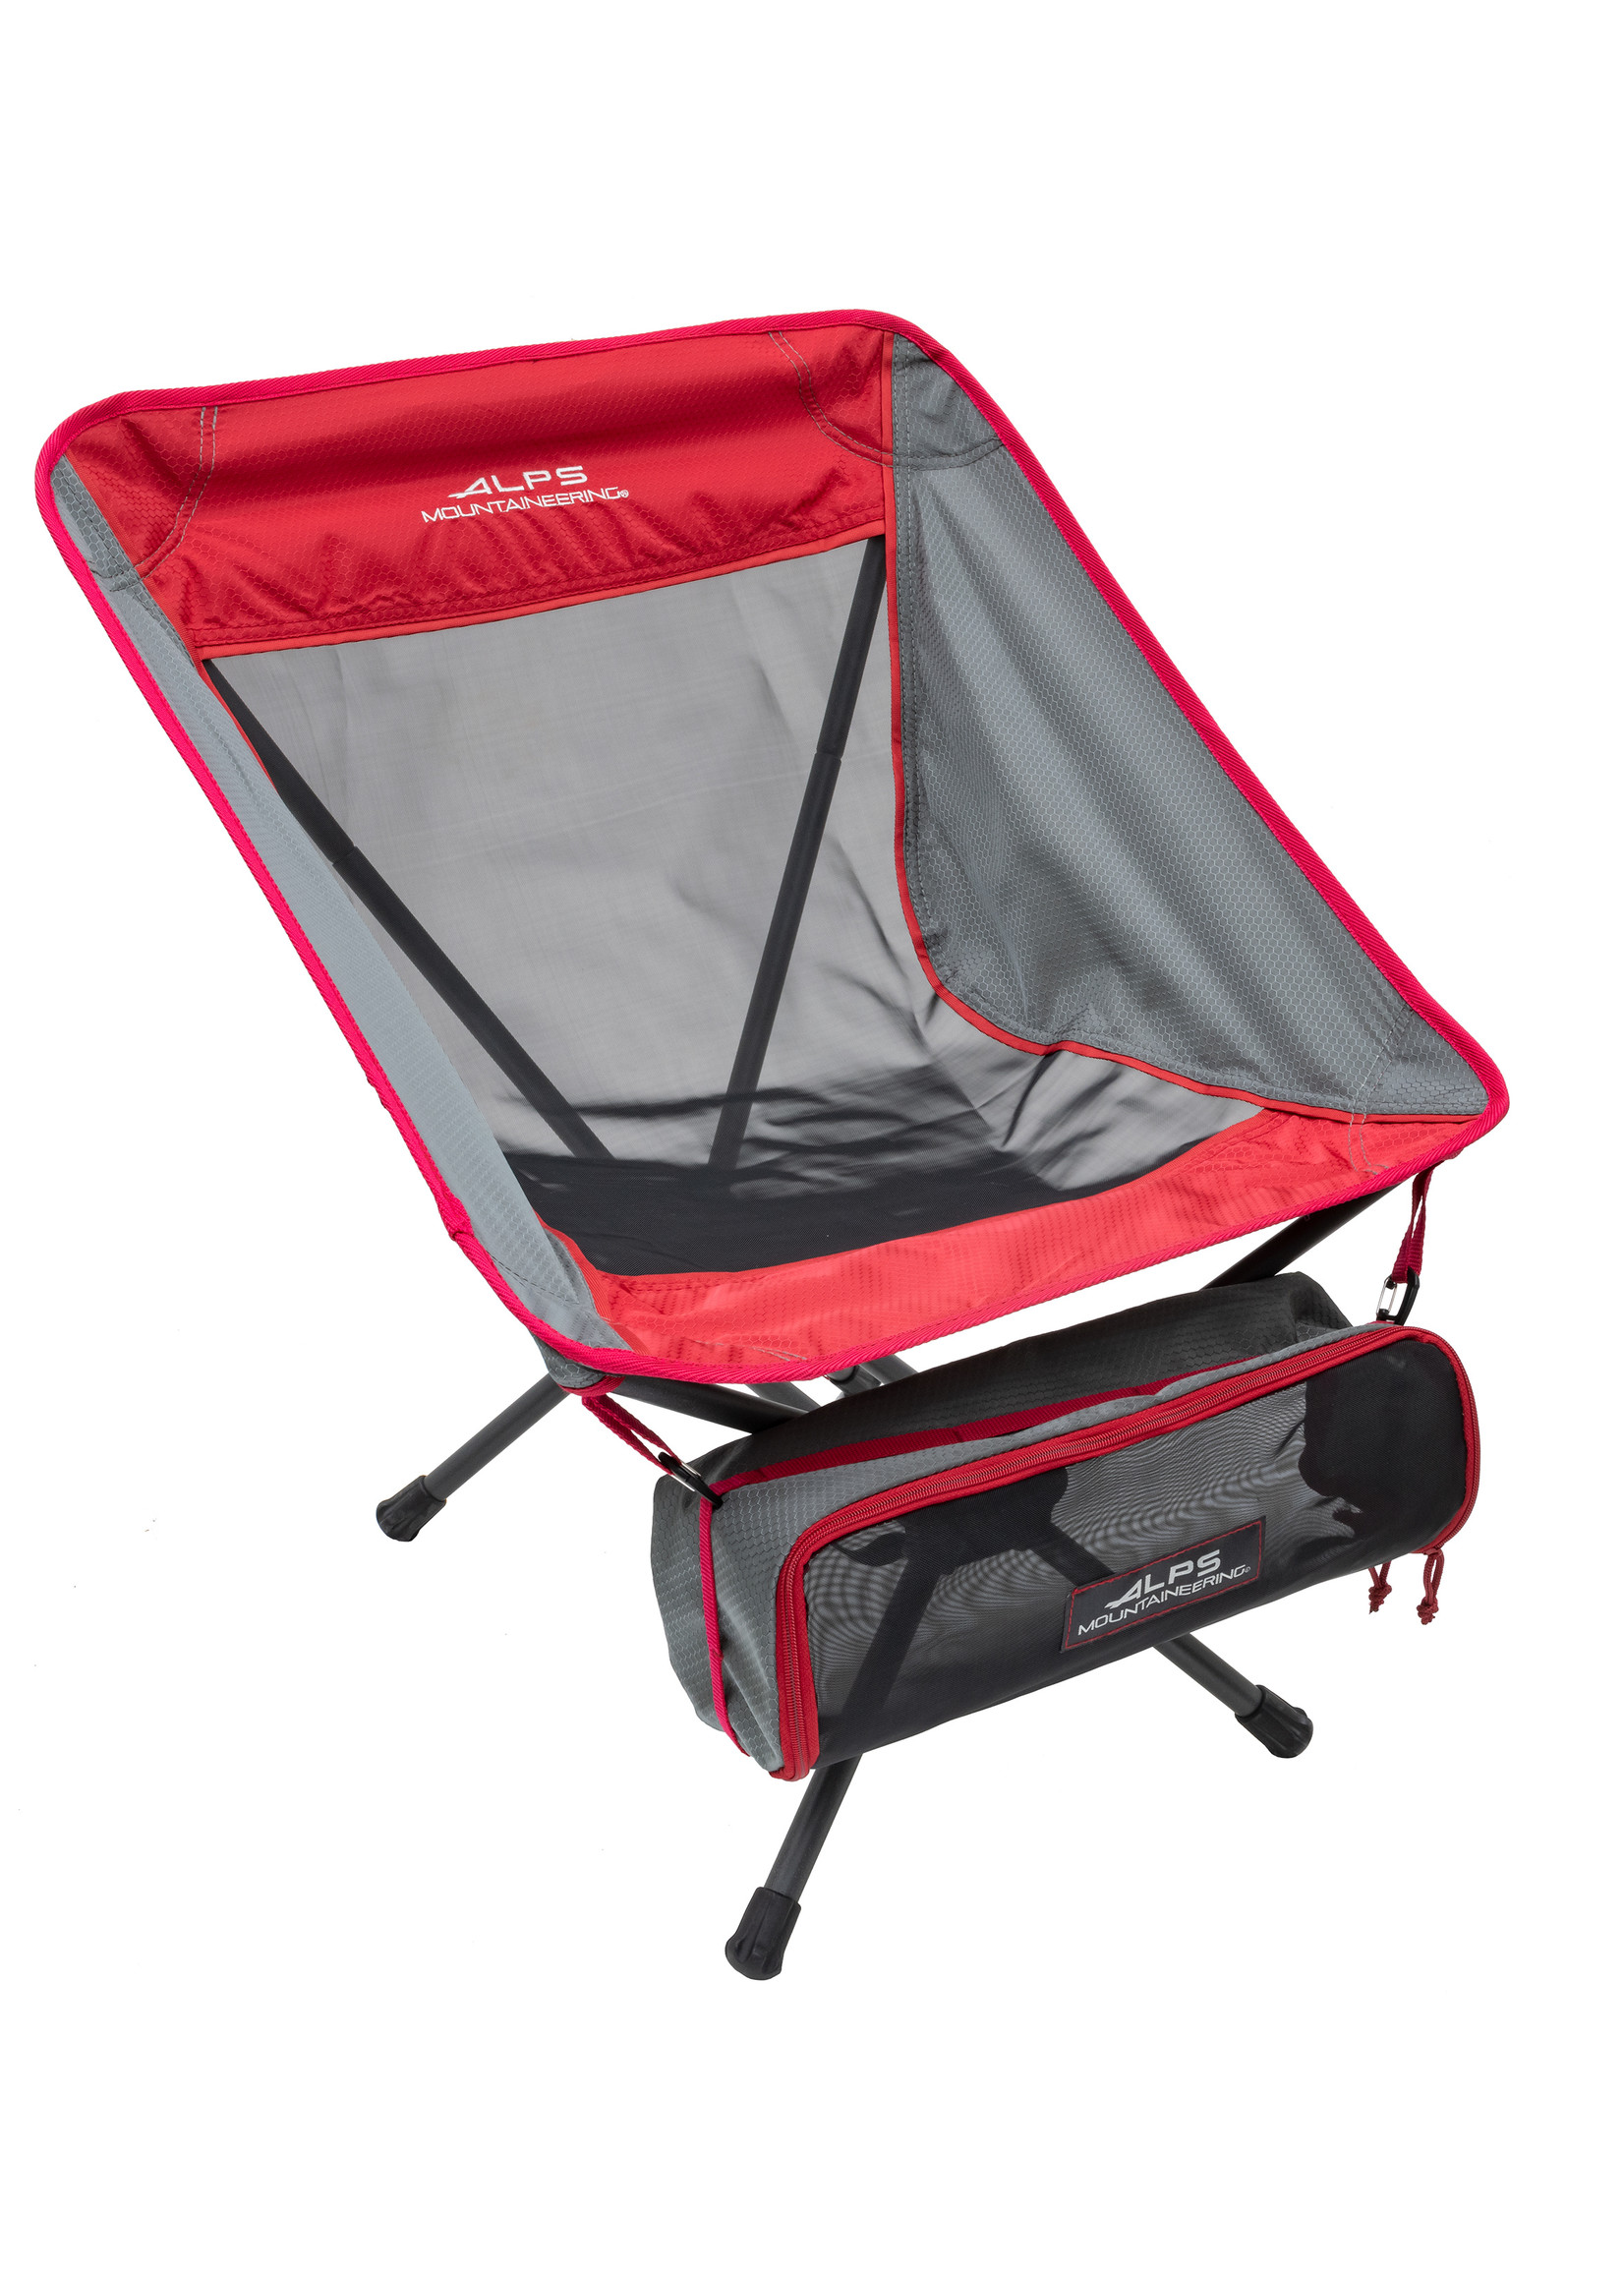 Alps Mountaineering Simmer Chair